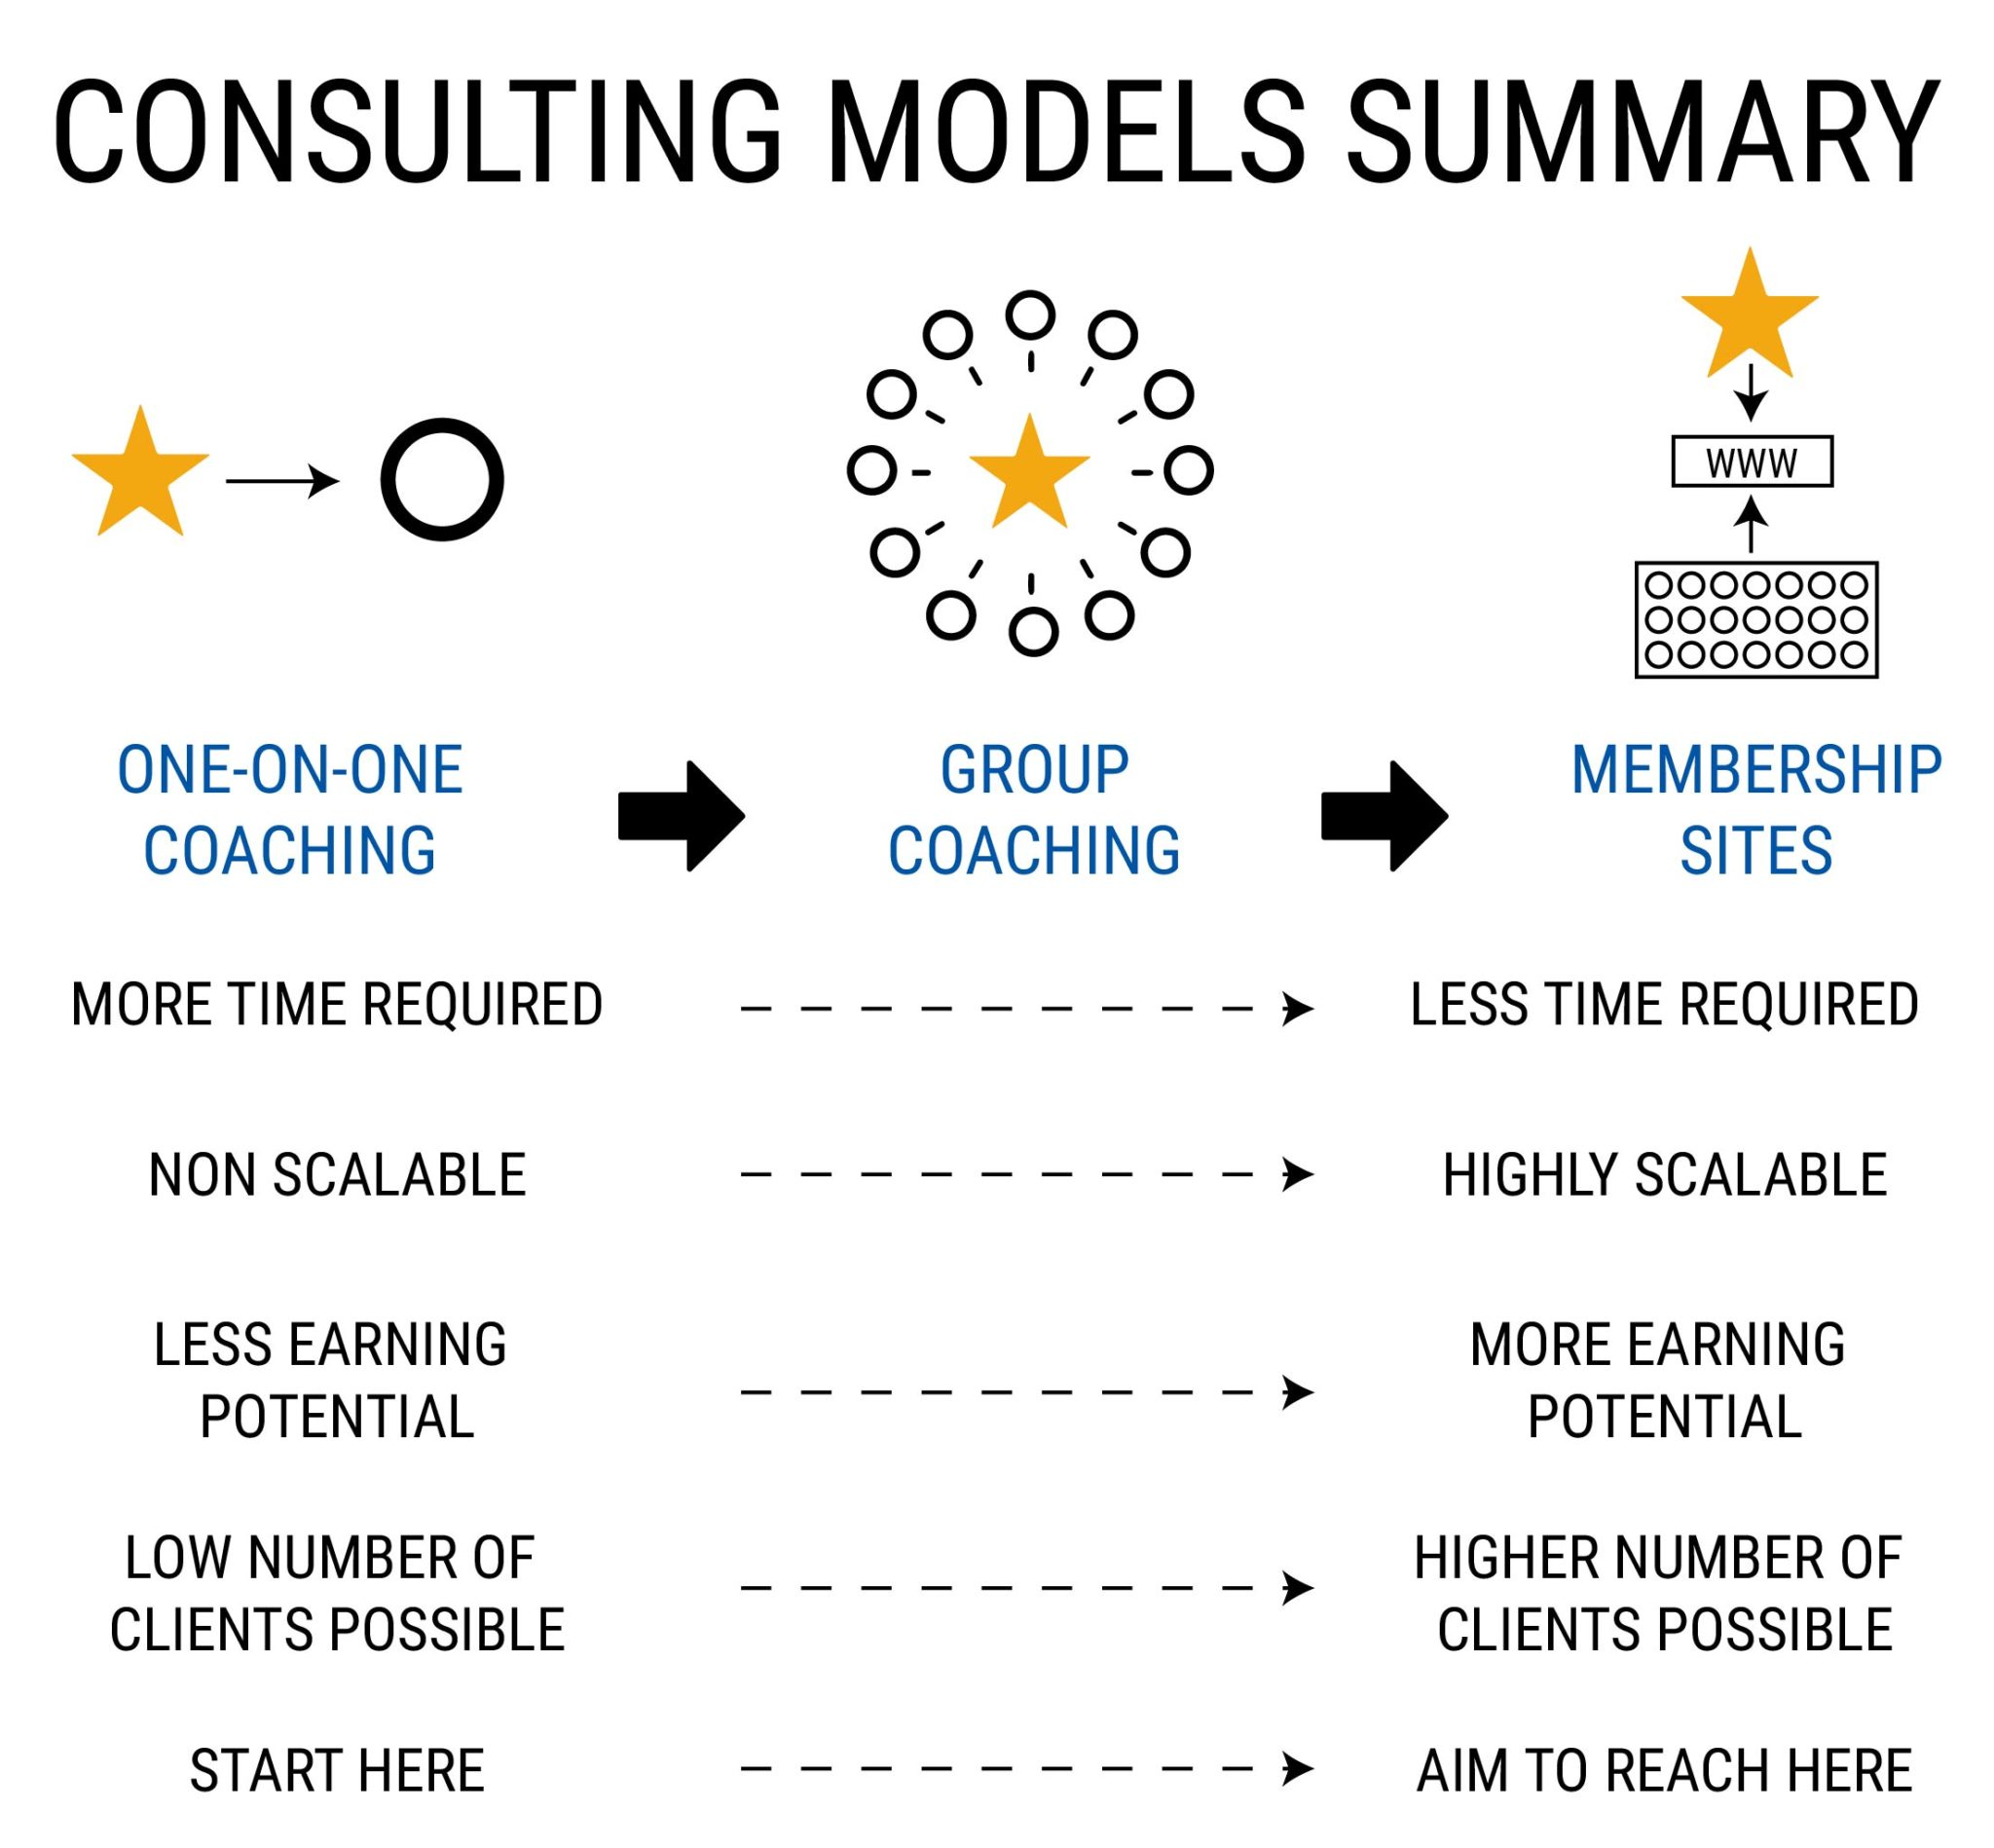 CONSULTING MODELS SUMMARY